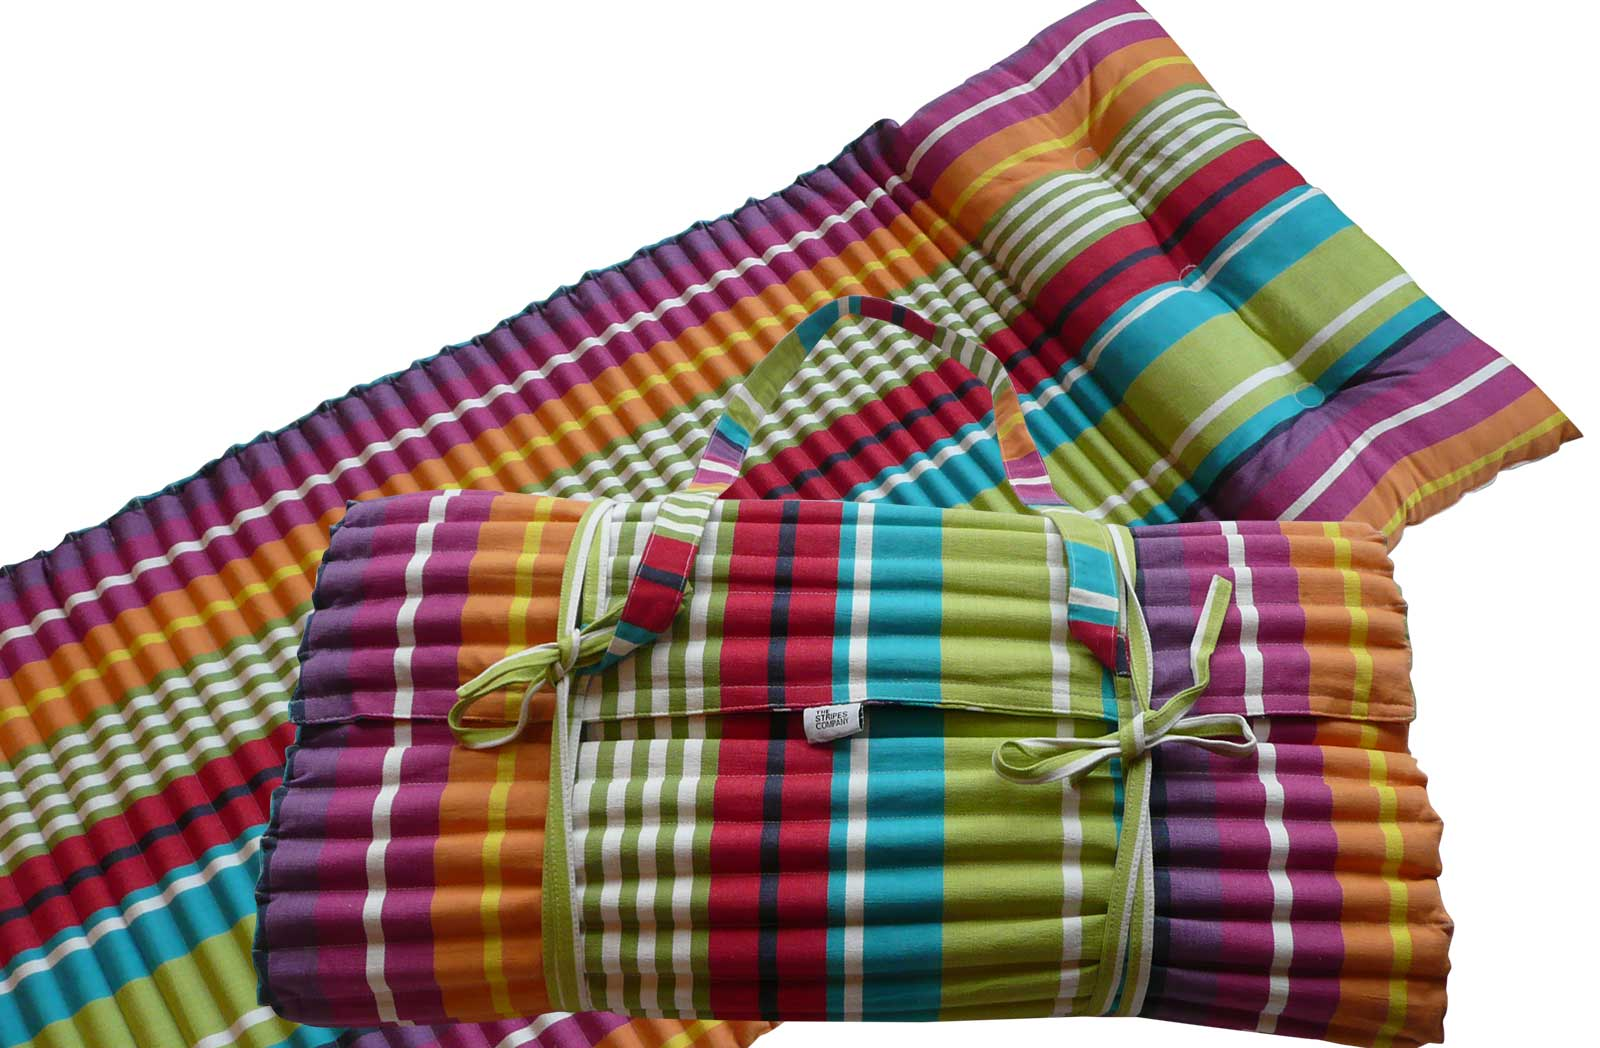 Roll Up Beach Mattress in bright vibrant stripes